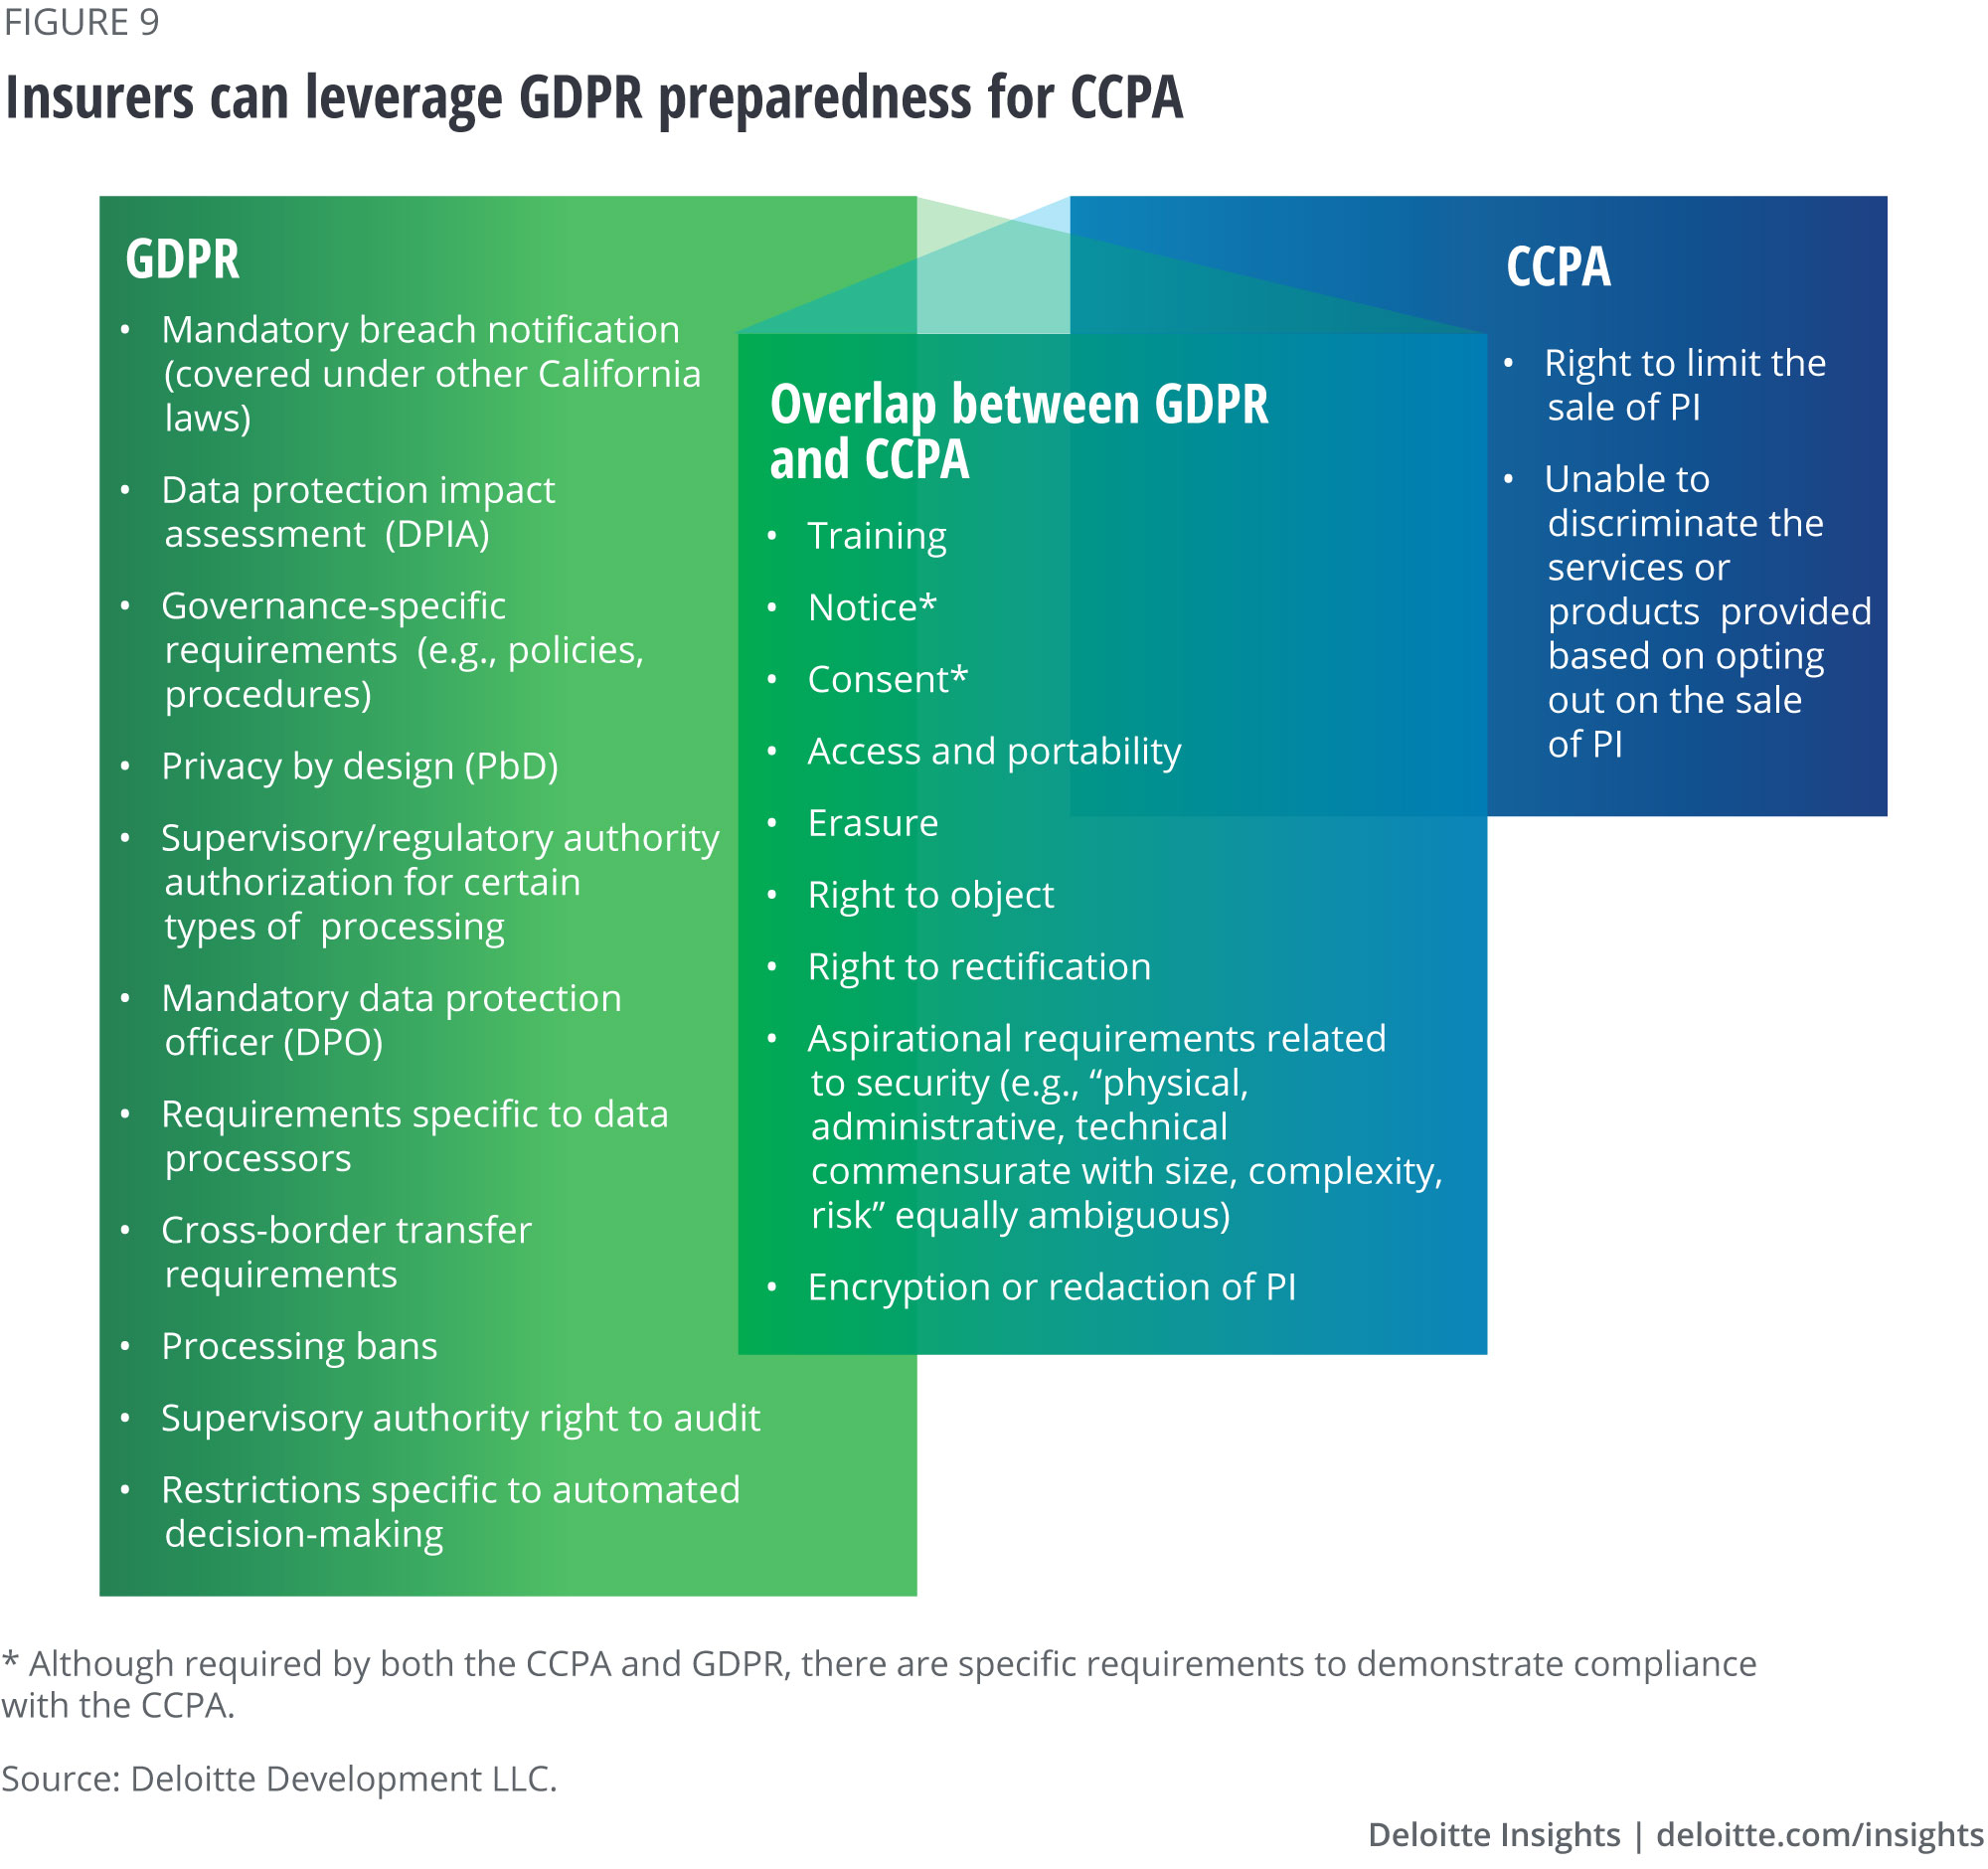 Insurers can leverage GDPR preparedness for CCPA